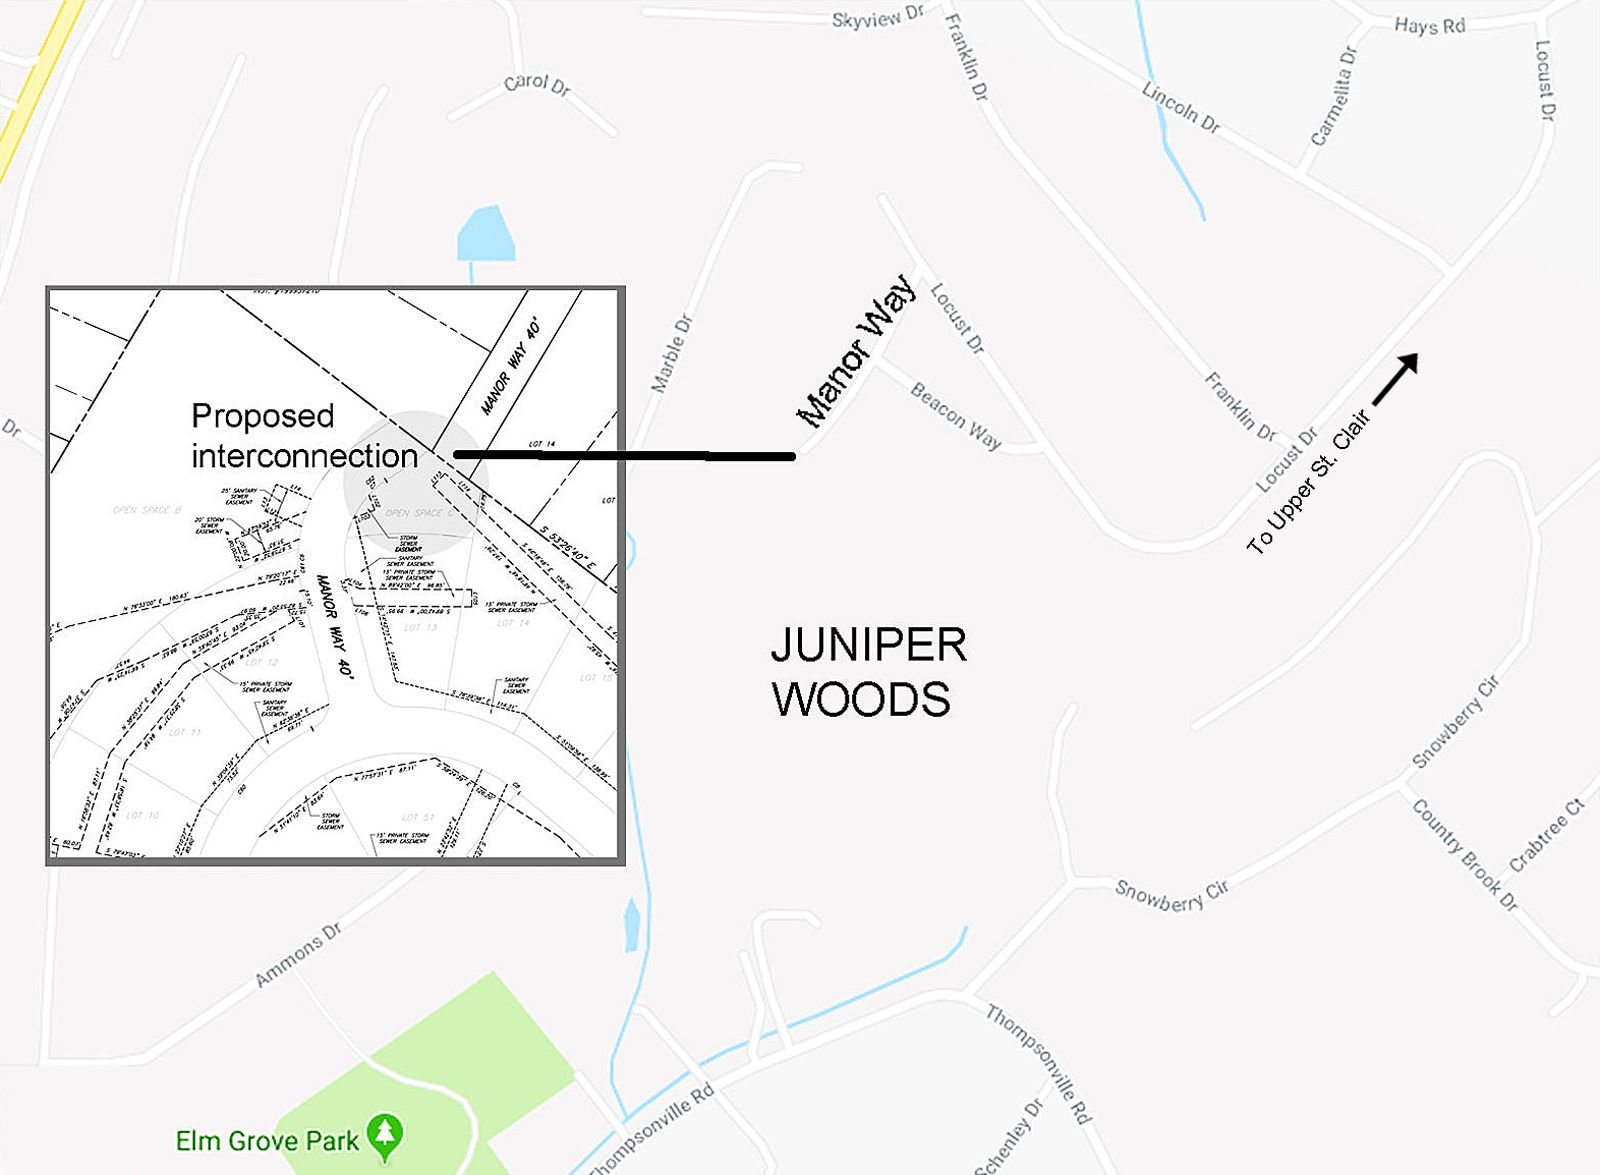 Peters Township pursues eminent domain for connector road